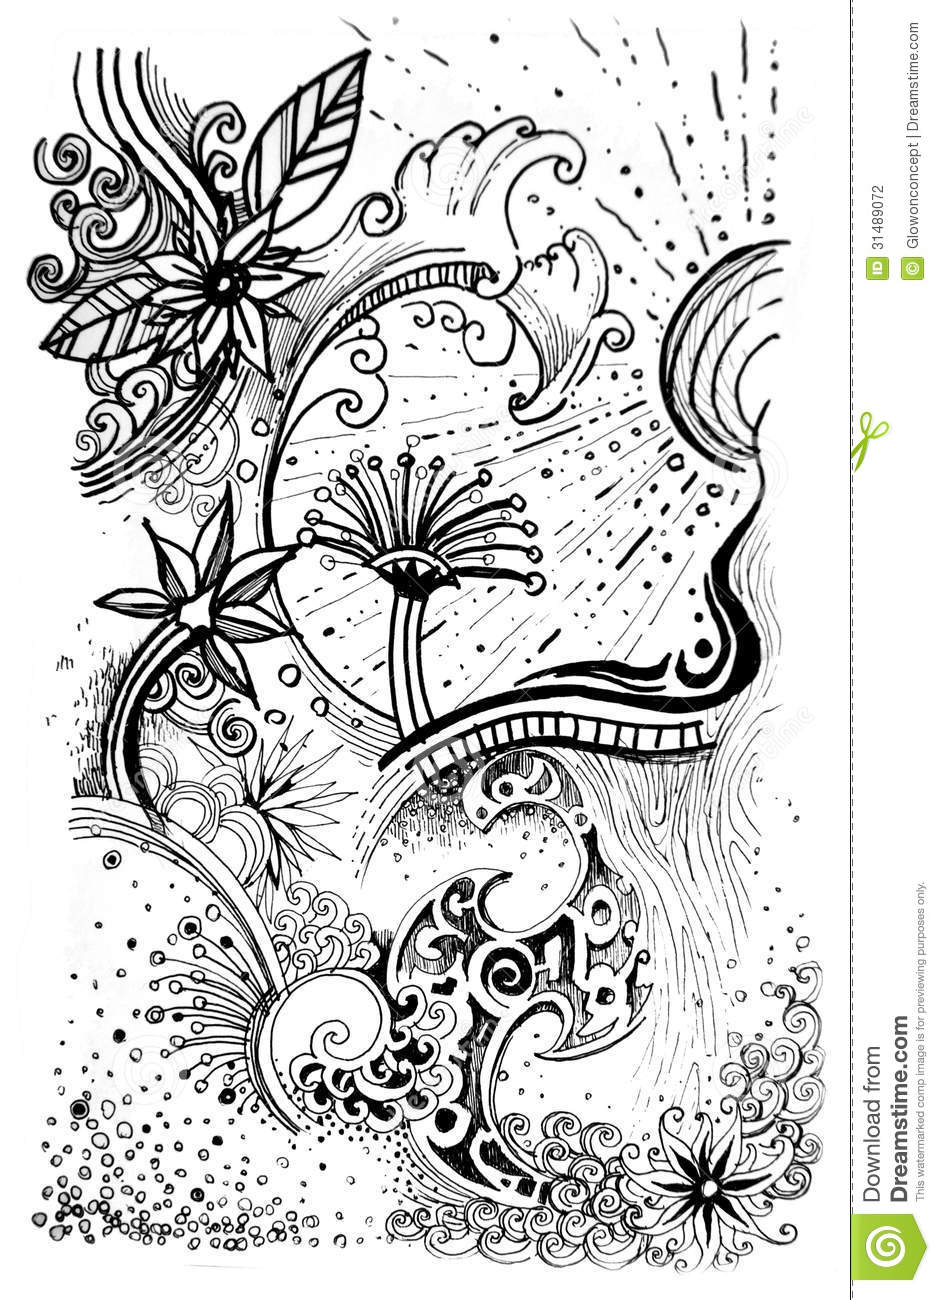 Line Drawing Flower Pattern : Line drawings on pinterest zentangle to draw and drawing